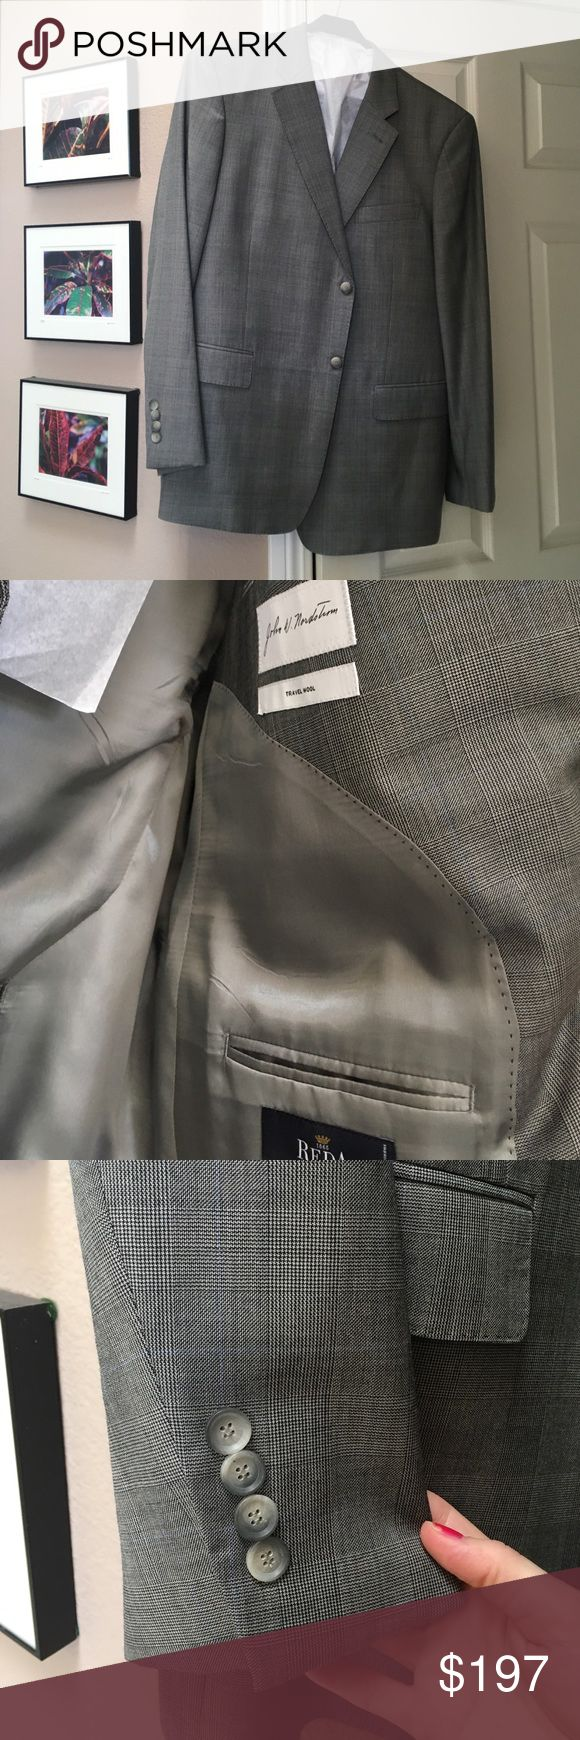 Sexy NWOT John W Nordstrom 46R/40W greyplaid suit NWOT Super sexy grey plaid with hint of baby blue Taylored for cuff links. 34/35 ( shirt size)(  possibly herring bone)  bought this for a wedding, then got sick and never went to wear it. Expensive $995 suit! 46R/ W40 by John Nordstrom pants are plain front. John W. Nordstrom Suits & Blazers Suits